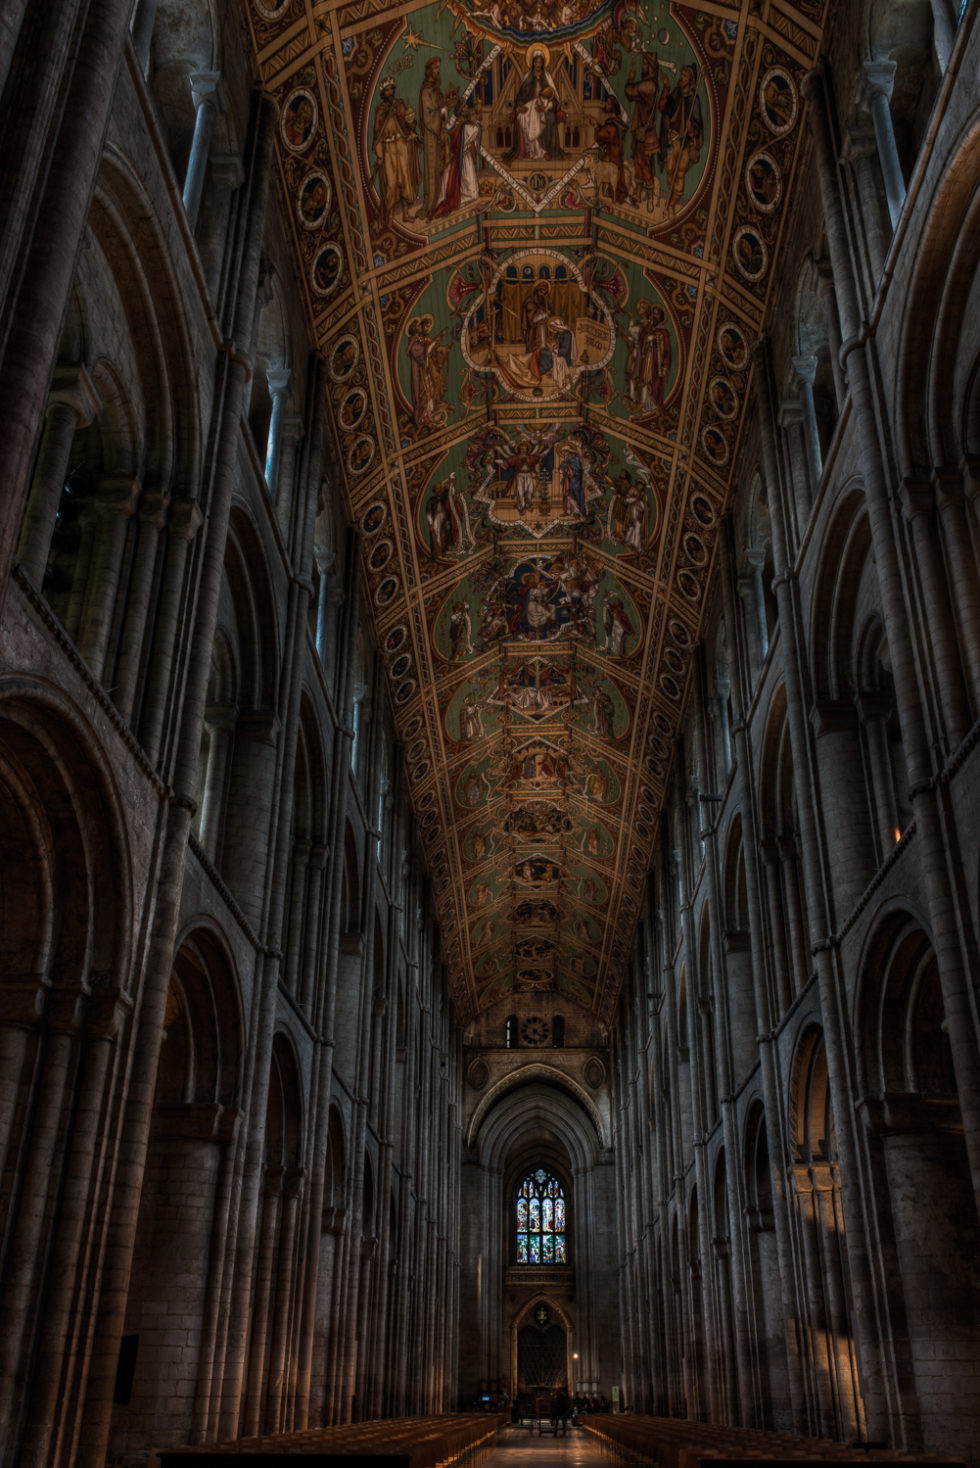 239-365v3 - Ely Cathedral Nave